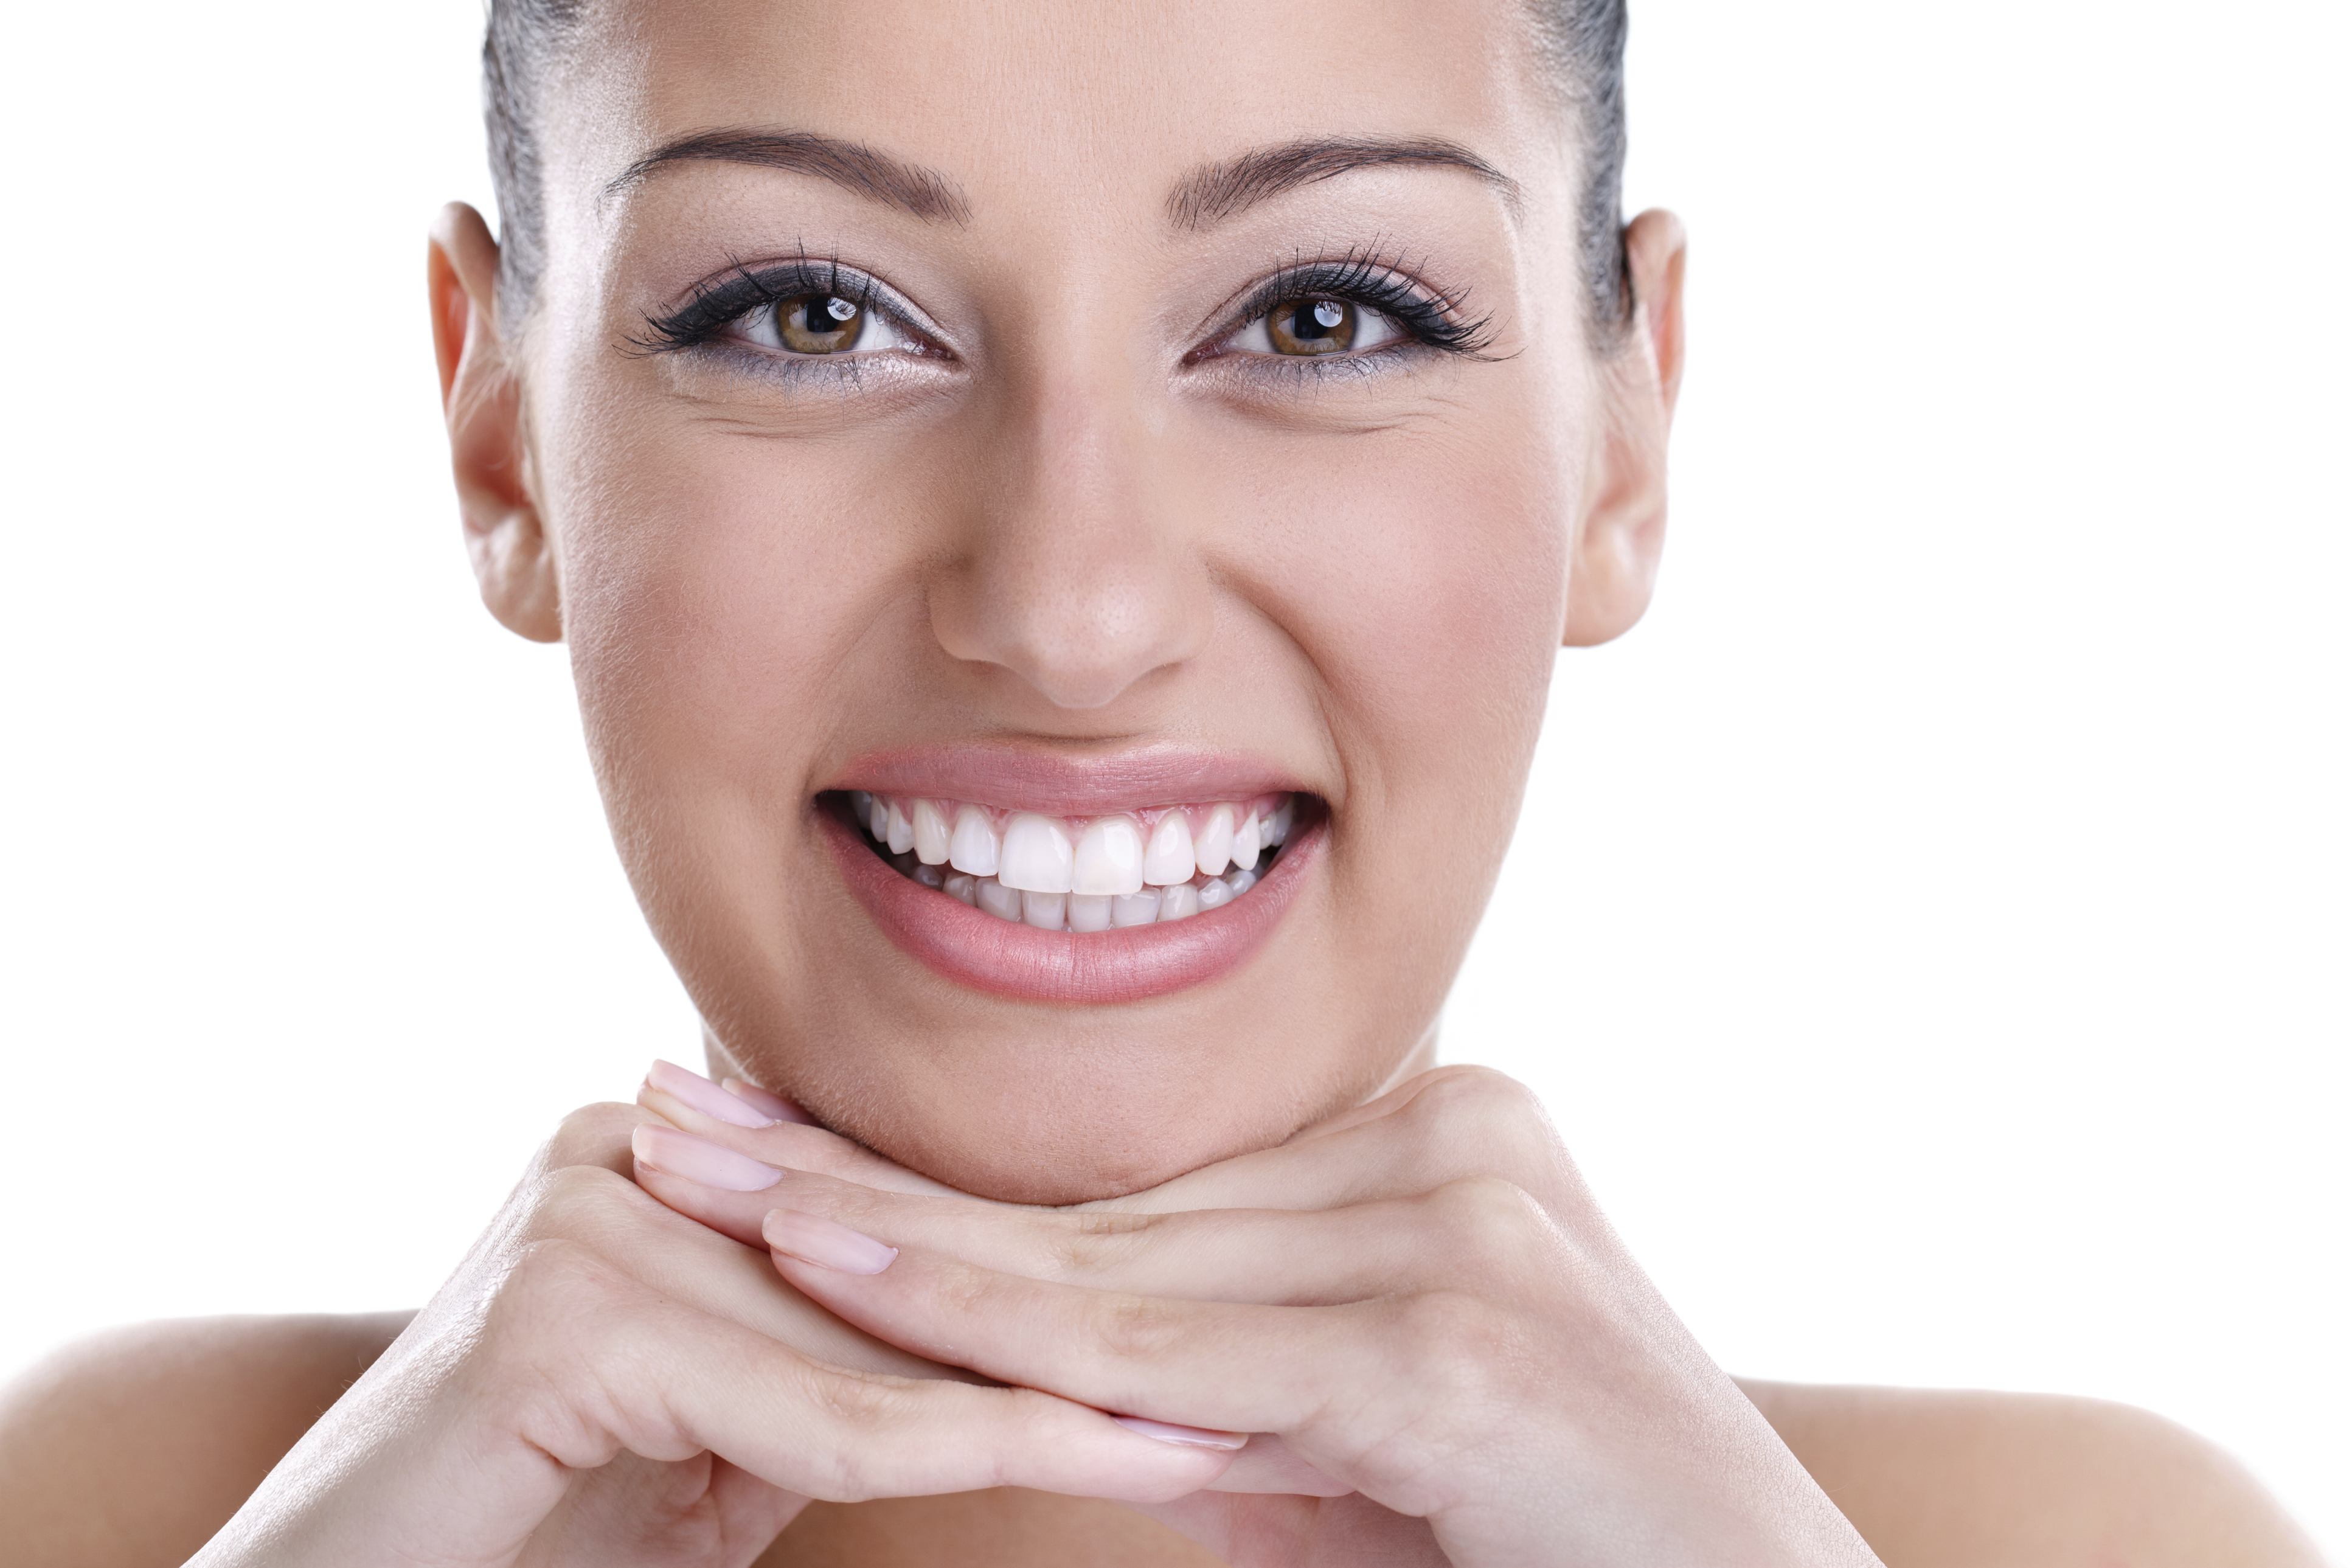 The Invisalign® system